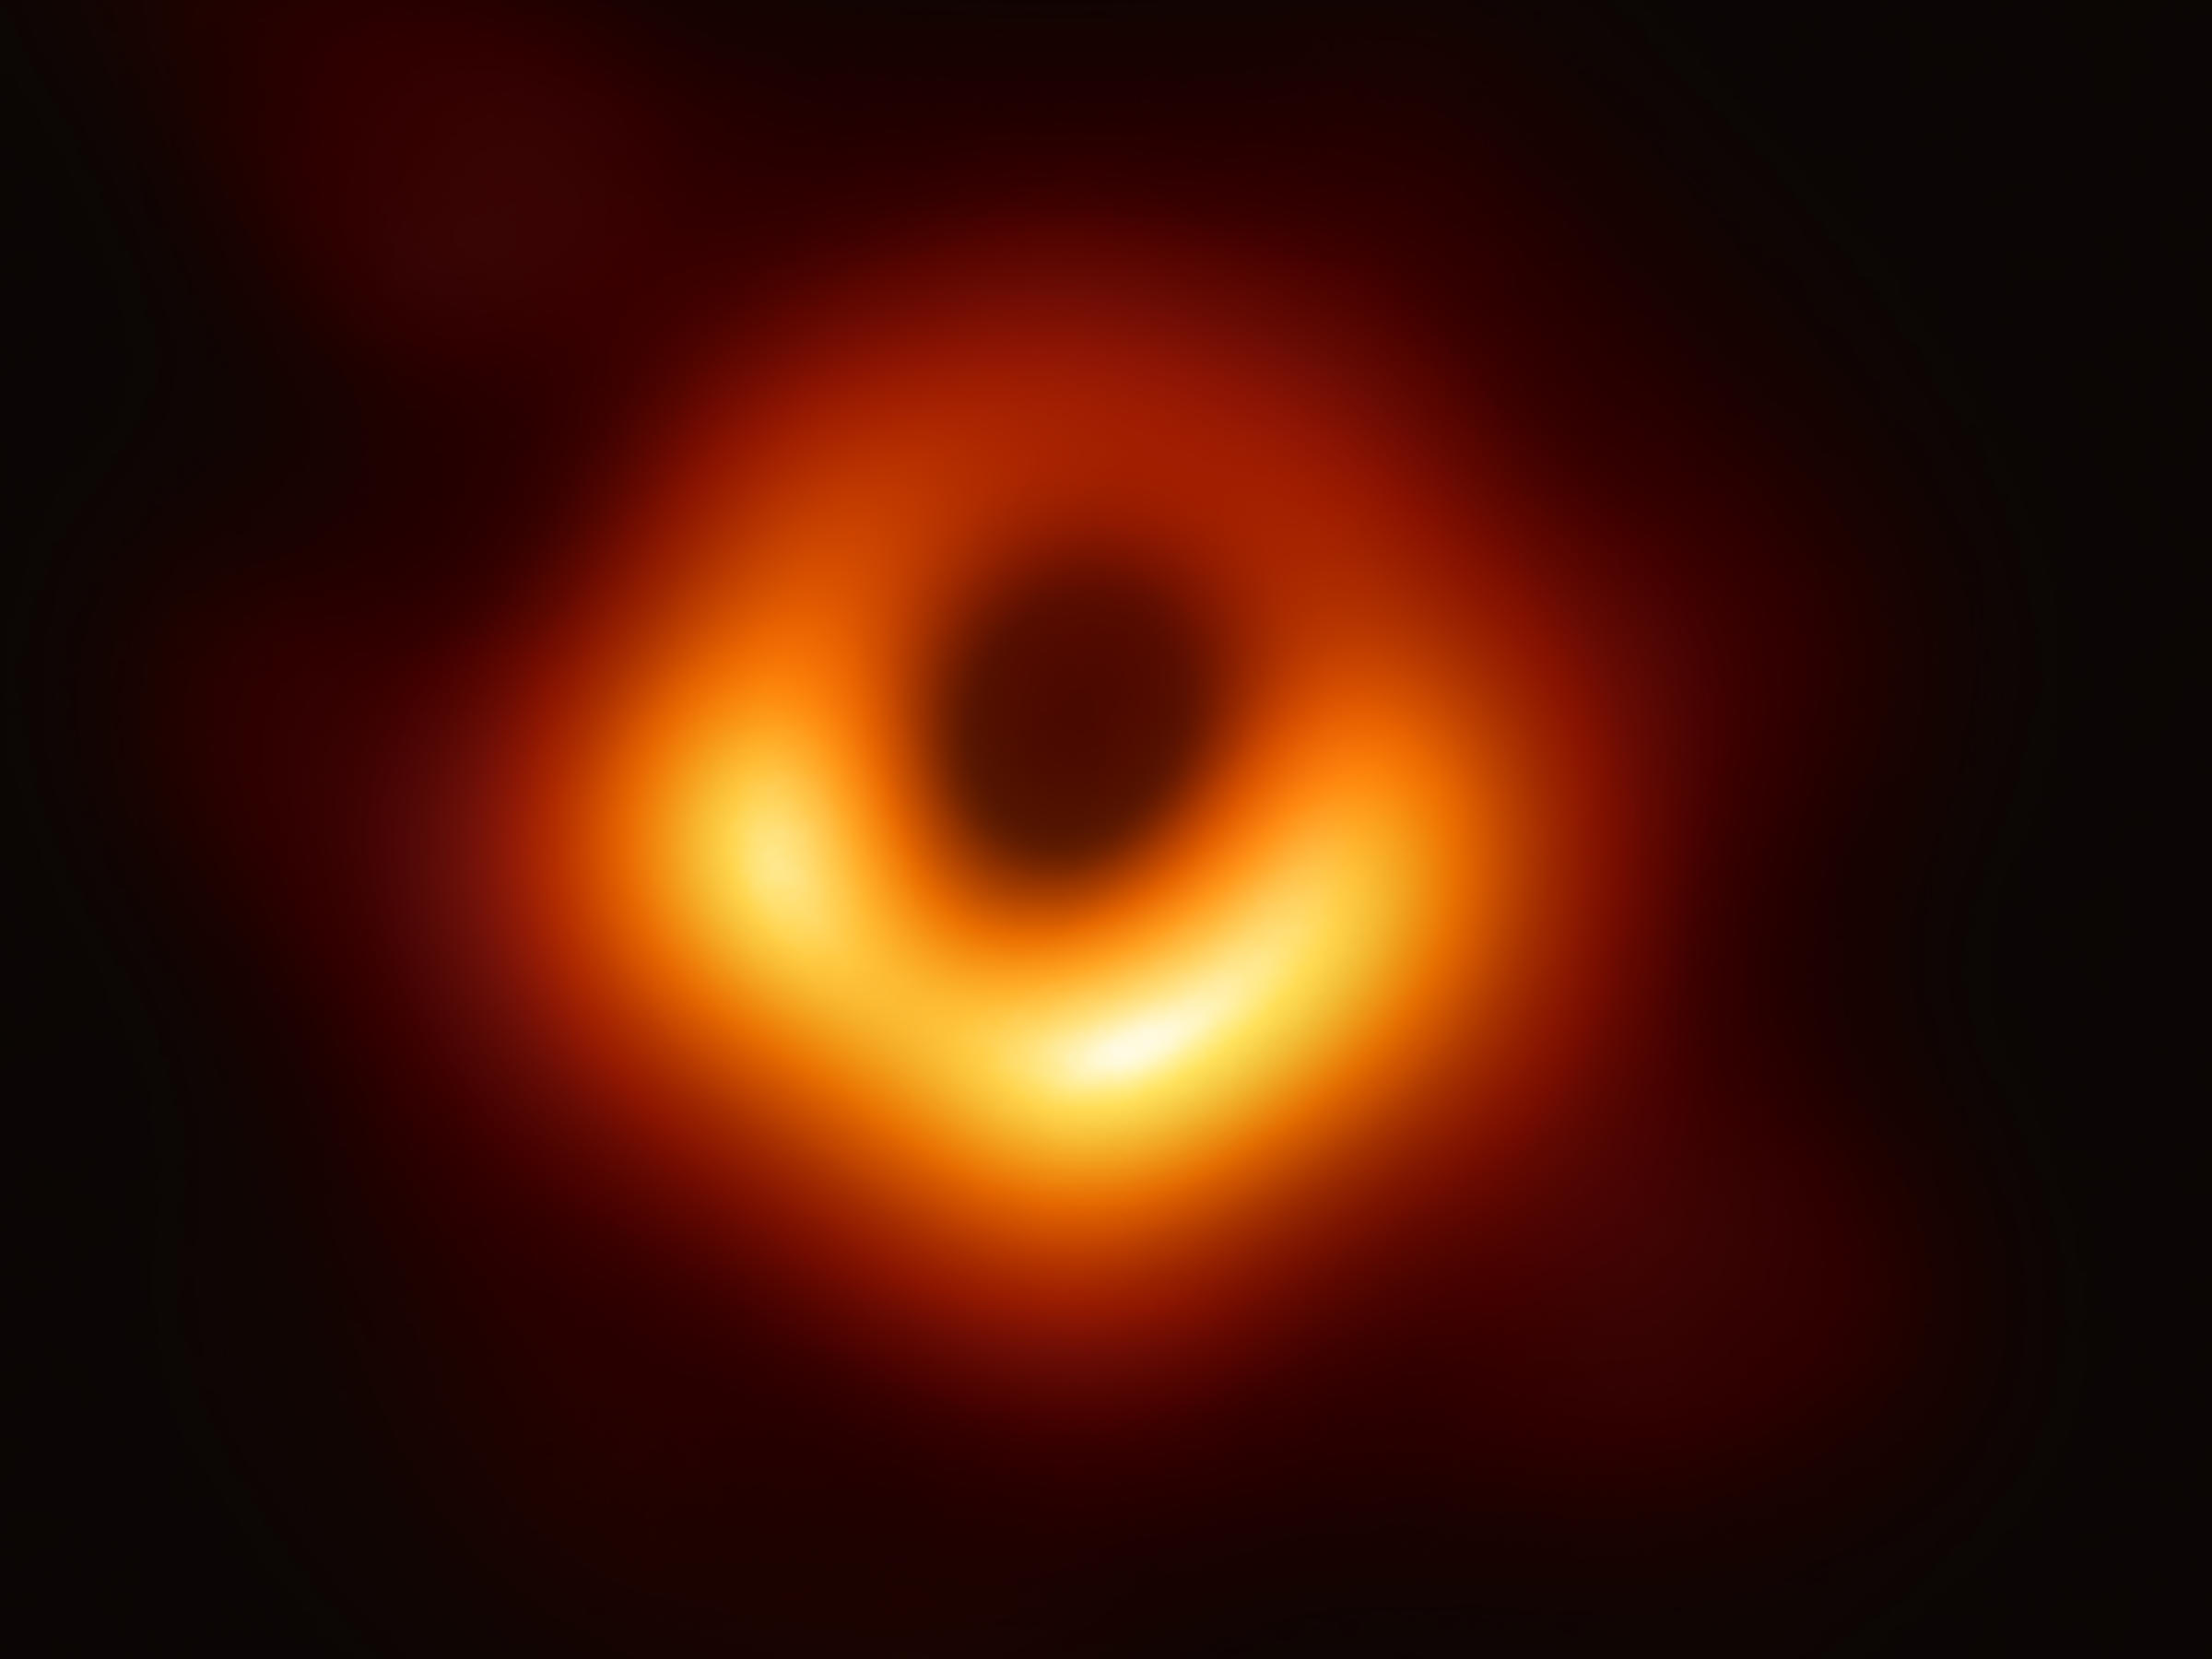 Earth Sees First Image Of A Black Hole | Vermont Public Radio